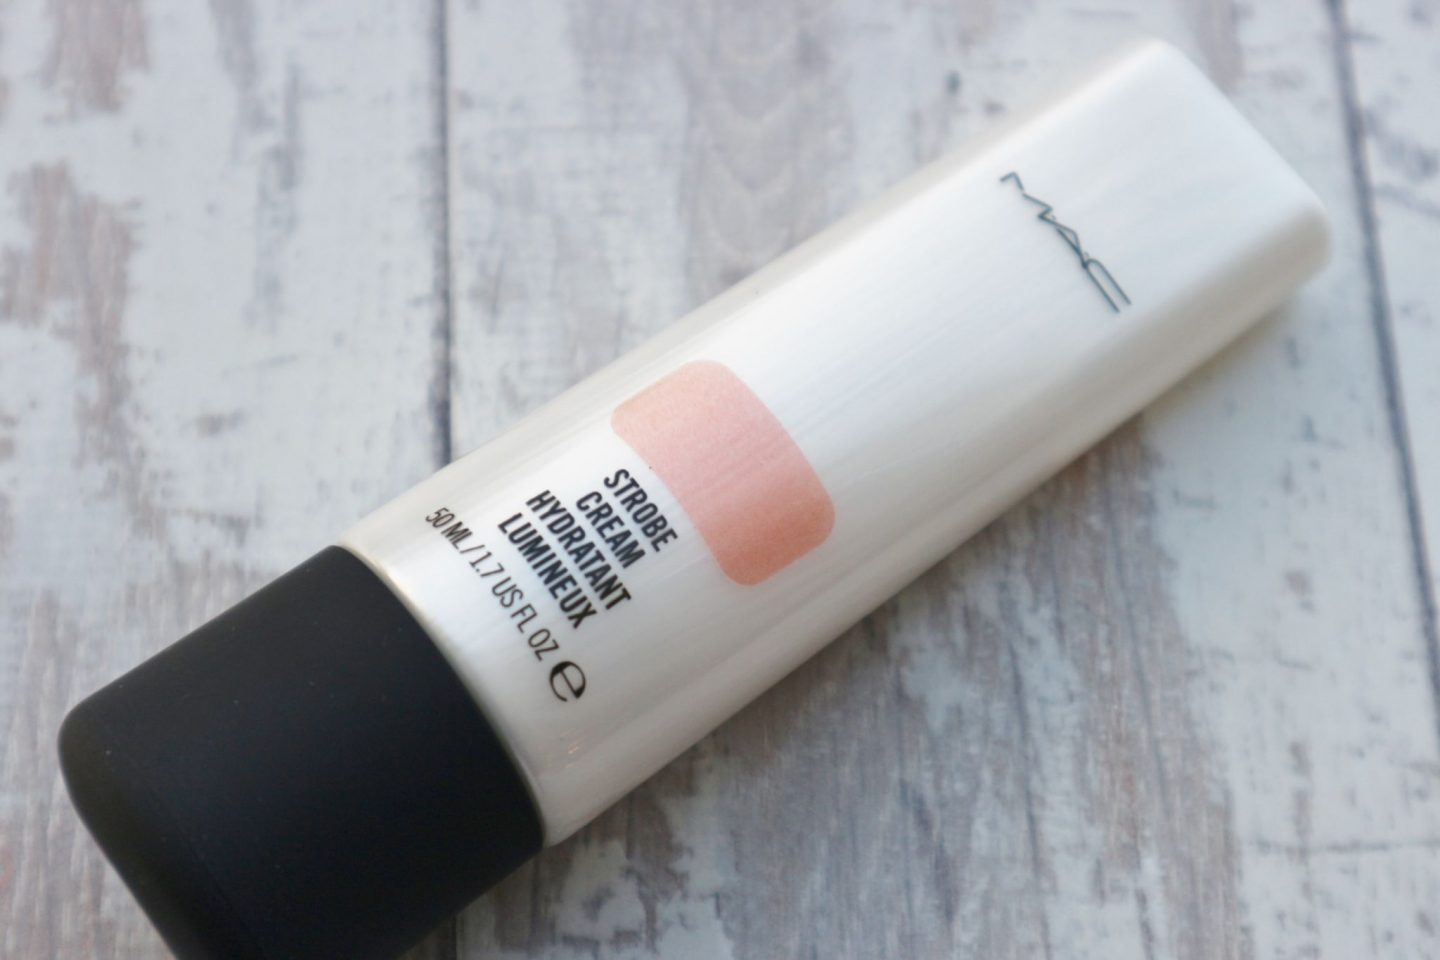 MAC Strobe Cream in Peachlite